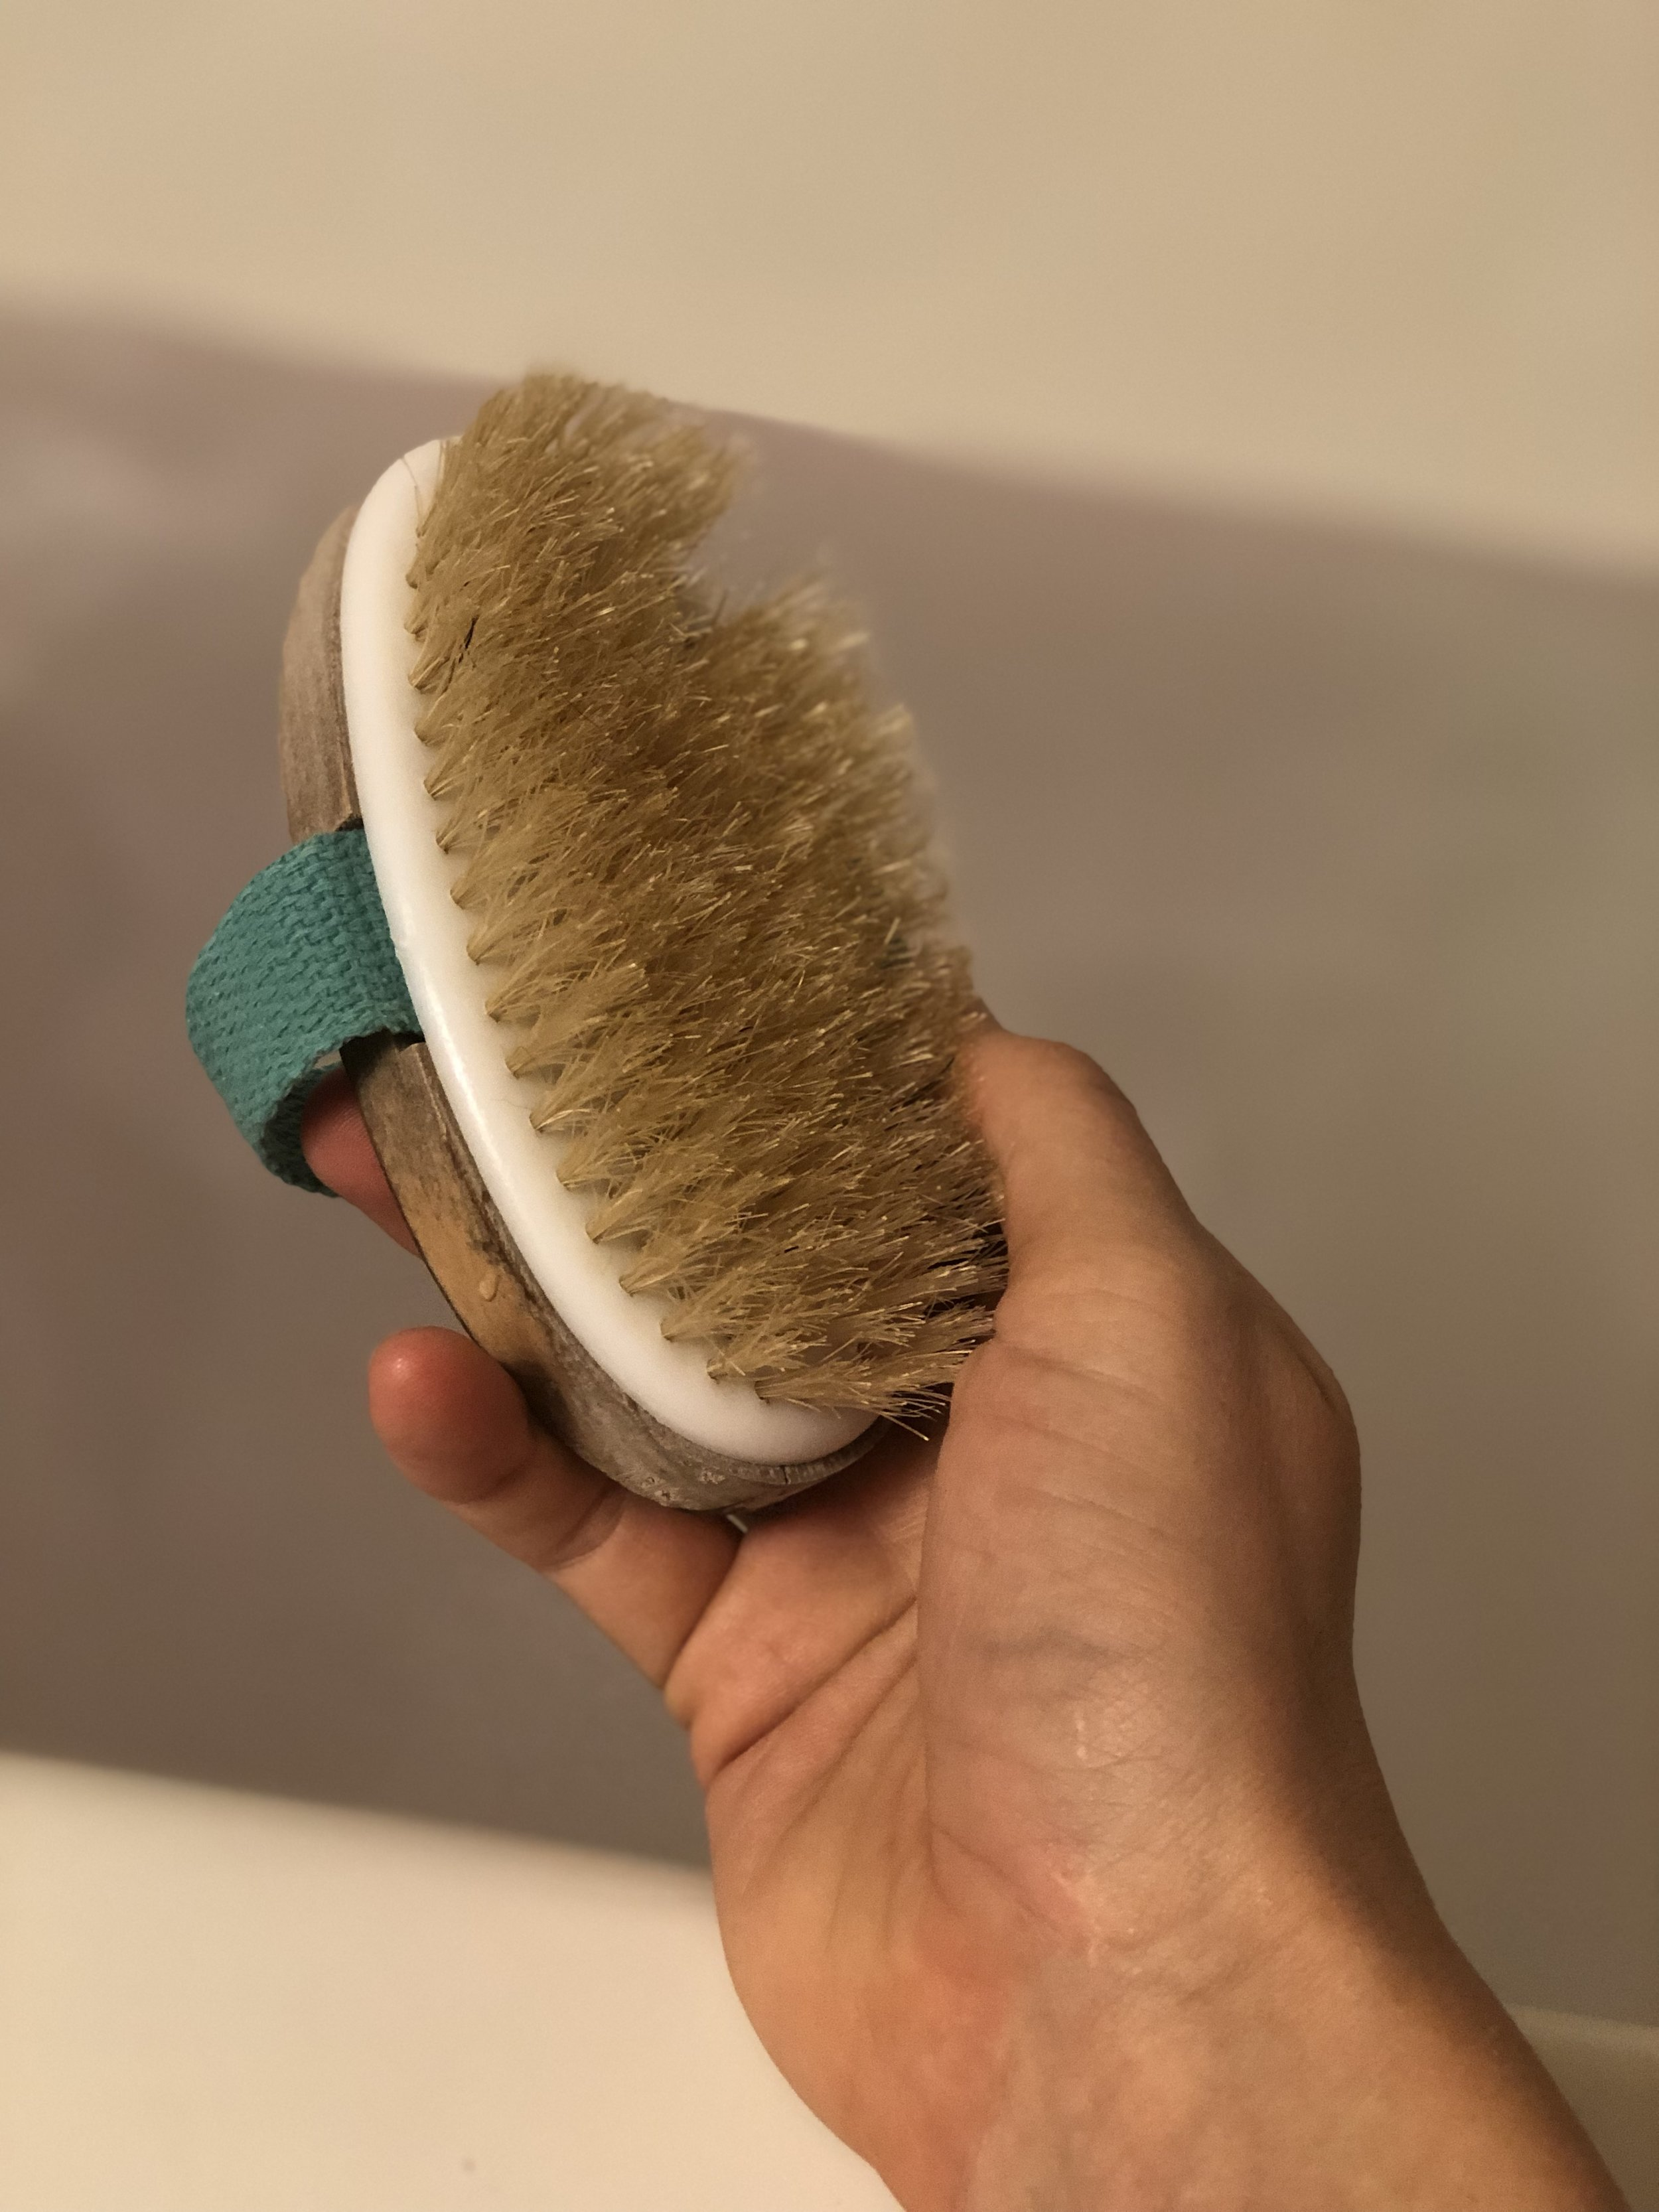 first it starts with a dry brush - where you ask? EVERYWHERE. ALL OVER. especially your knees, elbows and that spot right below your buns where your leg starts!